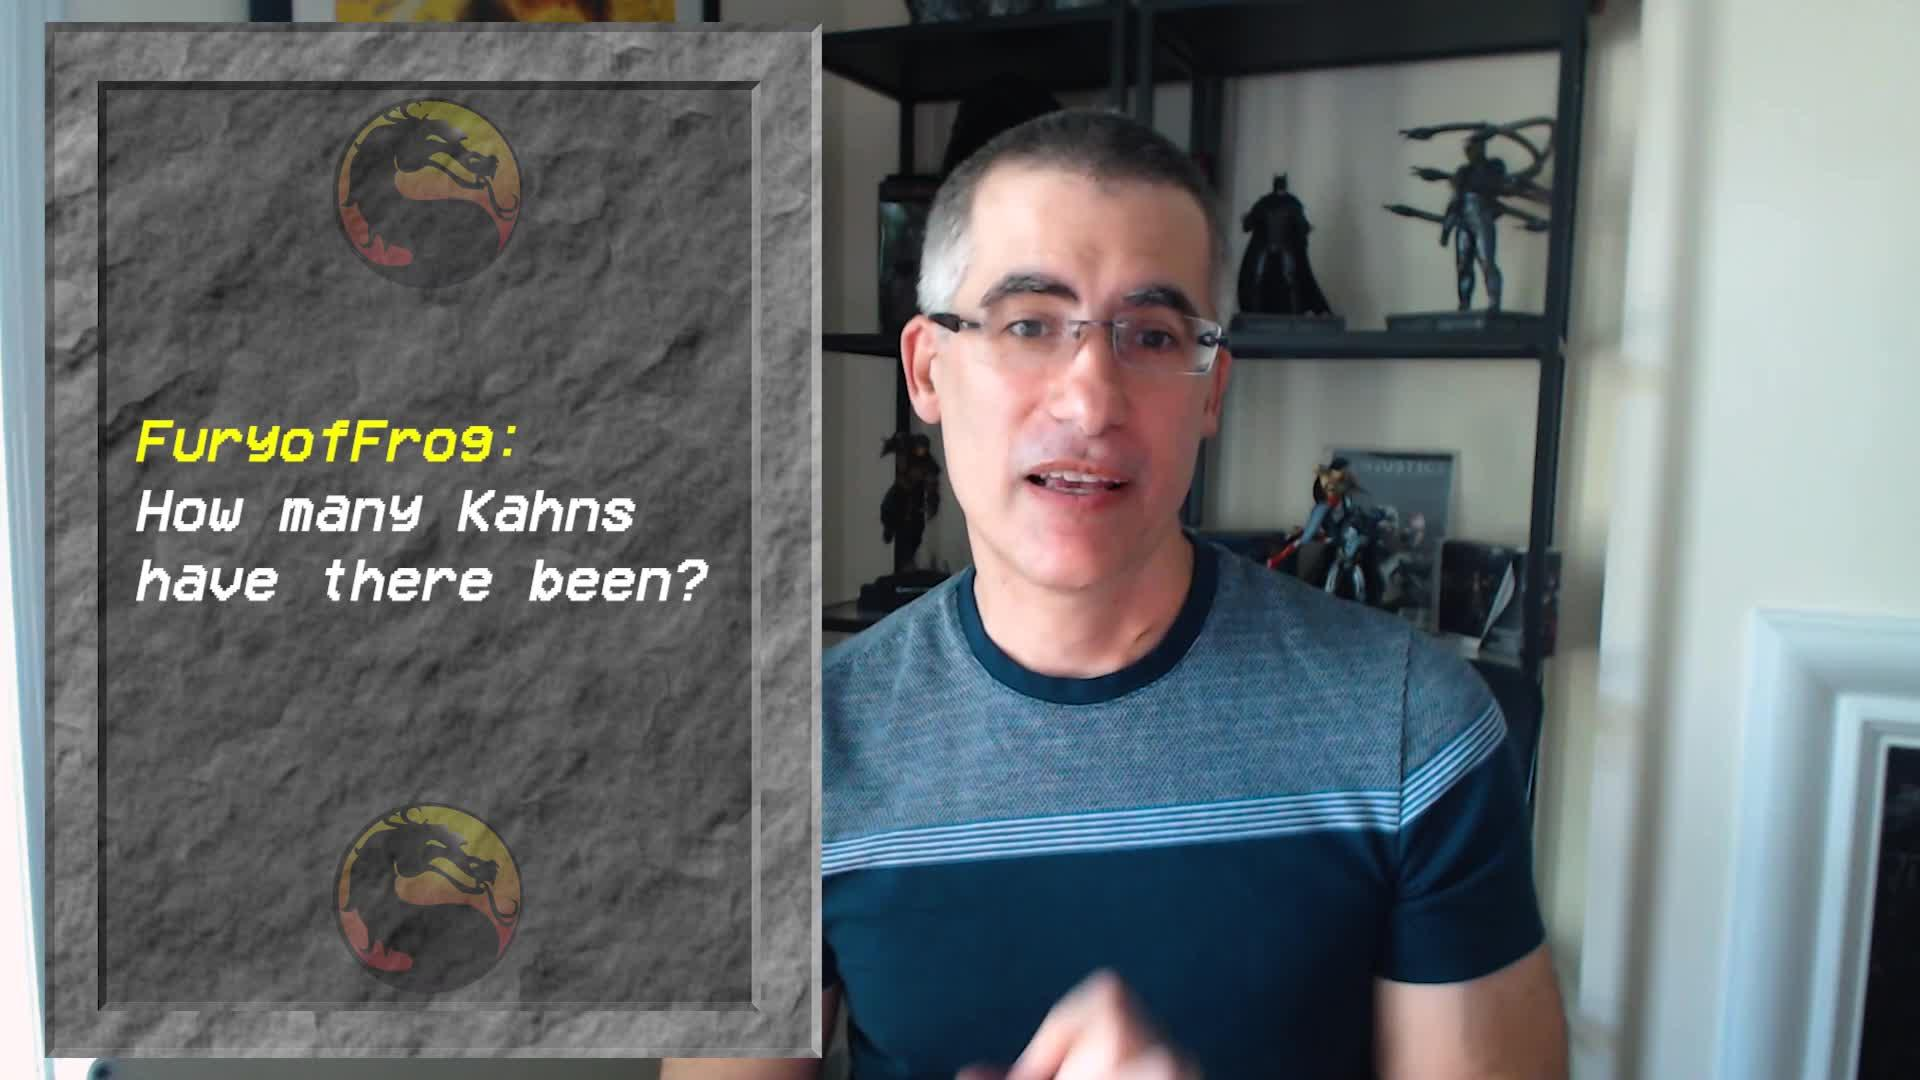 Today Ars Technica is joined by Dominic Cianciolo, story and voice over director at NetherRealm Studios, to answer your burning questions about the unsolved mysteries of the Mortal Kombat universe. Thank you to r/MortalKombat on reddit and the Ars Technica community for providing questions! Directed and Produced by Justin Wolfson Edited by Ron Douglas